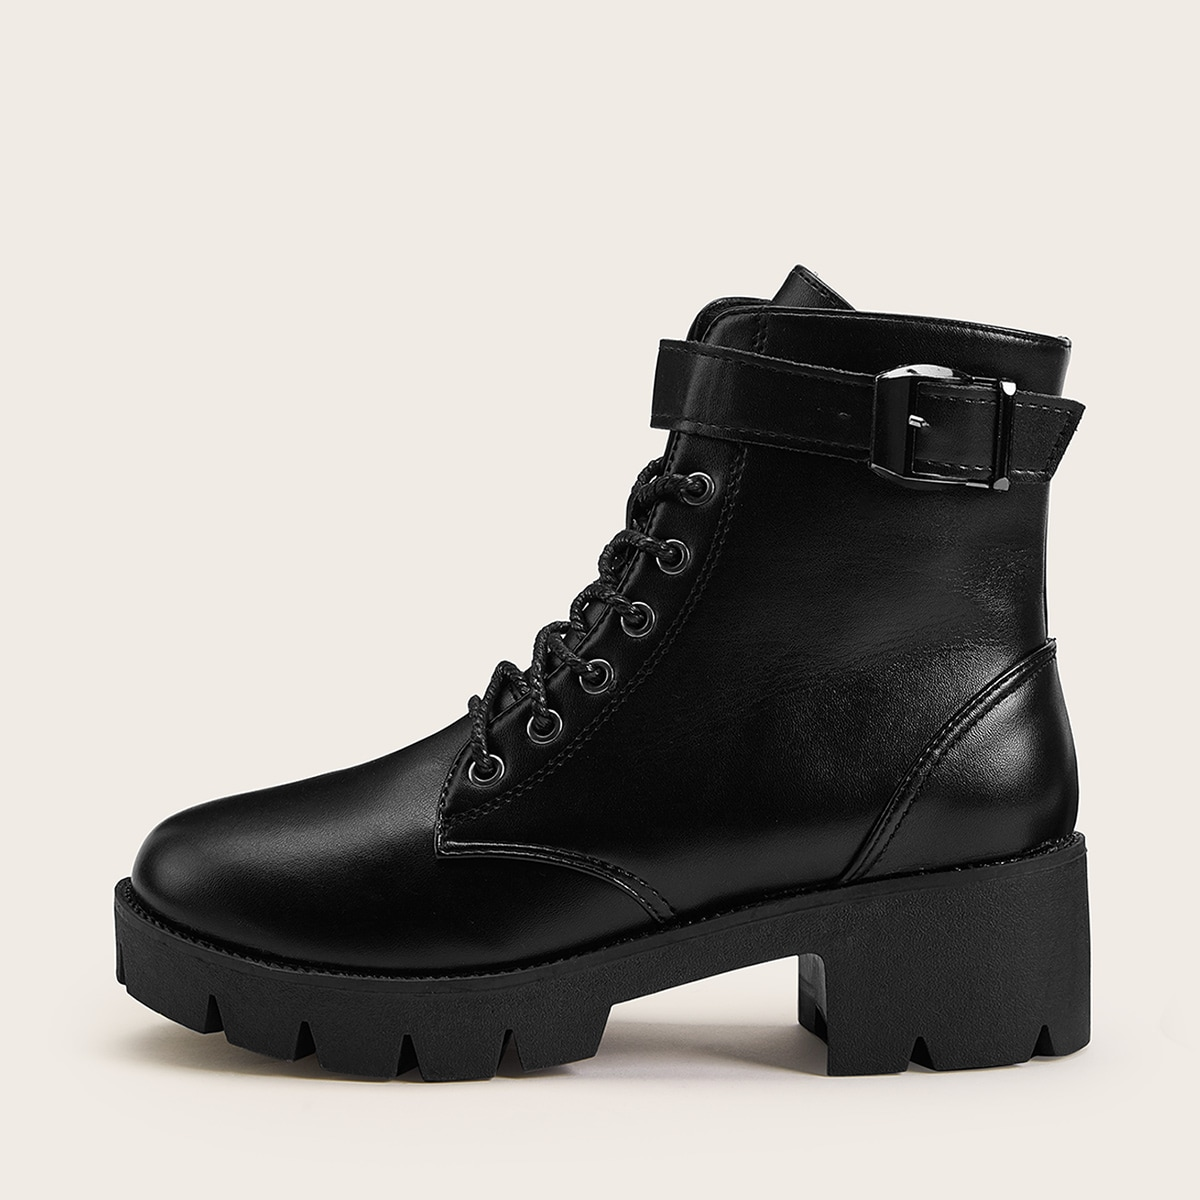 Lace Up Platform Boots in Black by ROMWE on GOOFASH